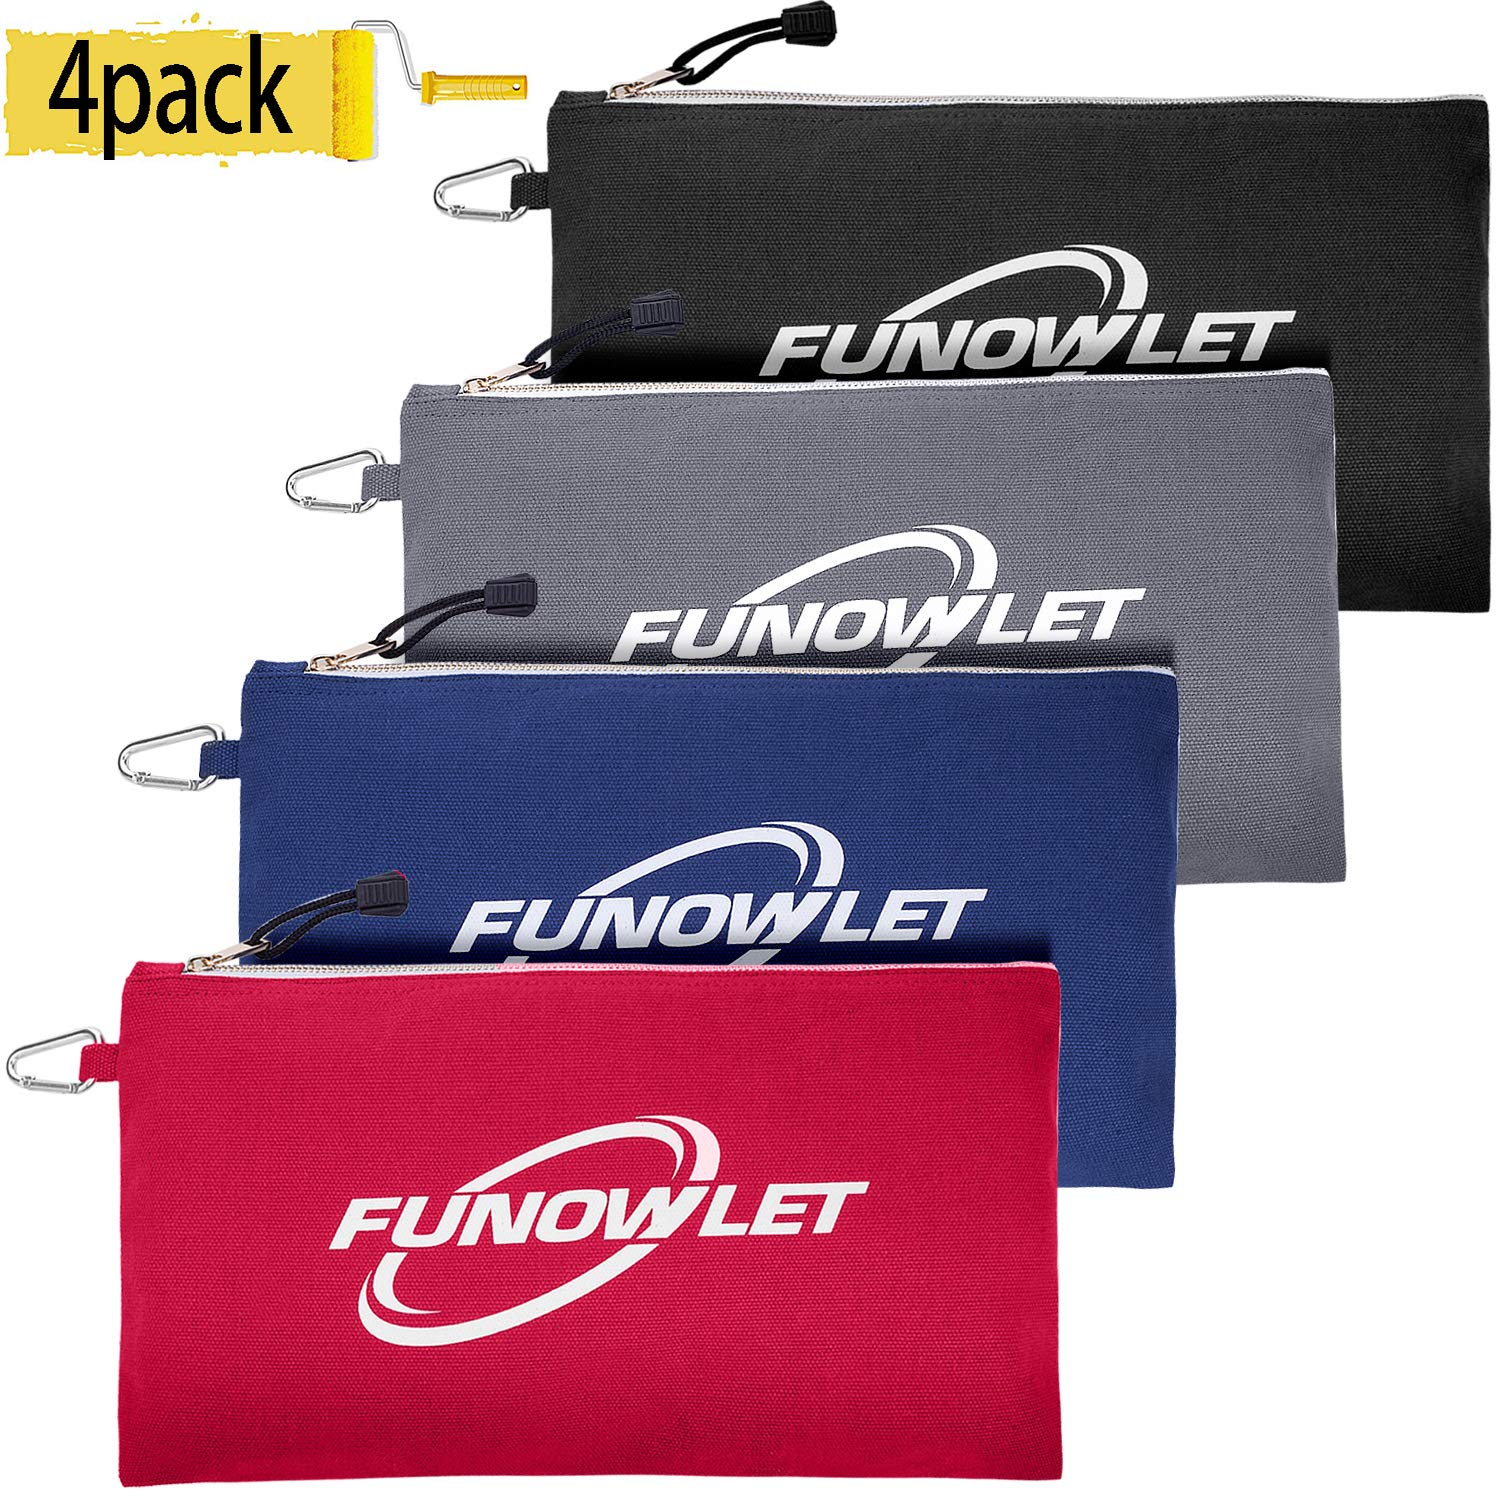 Canvas Zipper Utility Tool Bag - 4 Pack Great Quality Heavy Duty Metal Zippers Tool Pouch with Carabiner, Well Made Organizer Clip on Tote Bags in Blue, Black, Gray, Red by FunOwlet